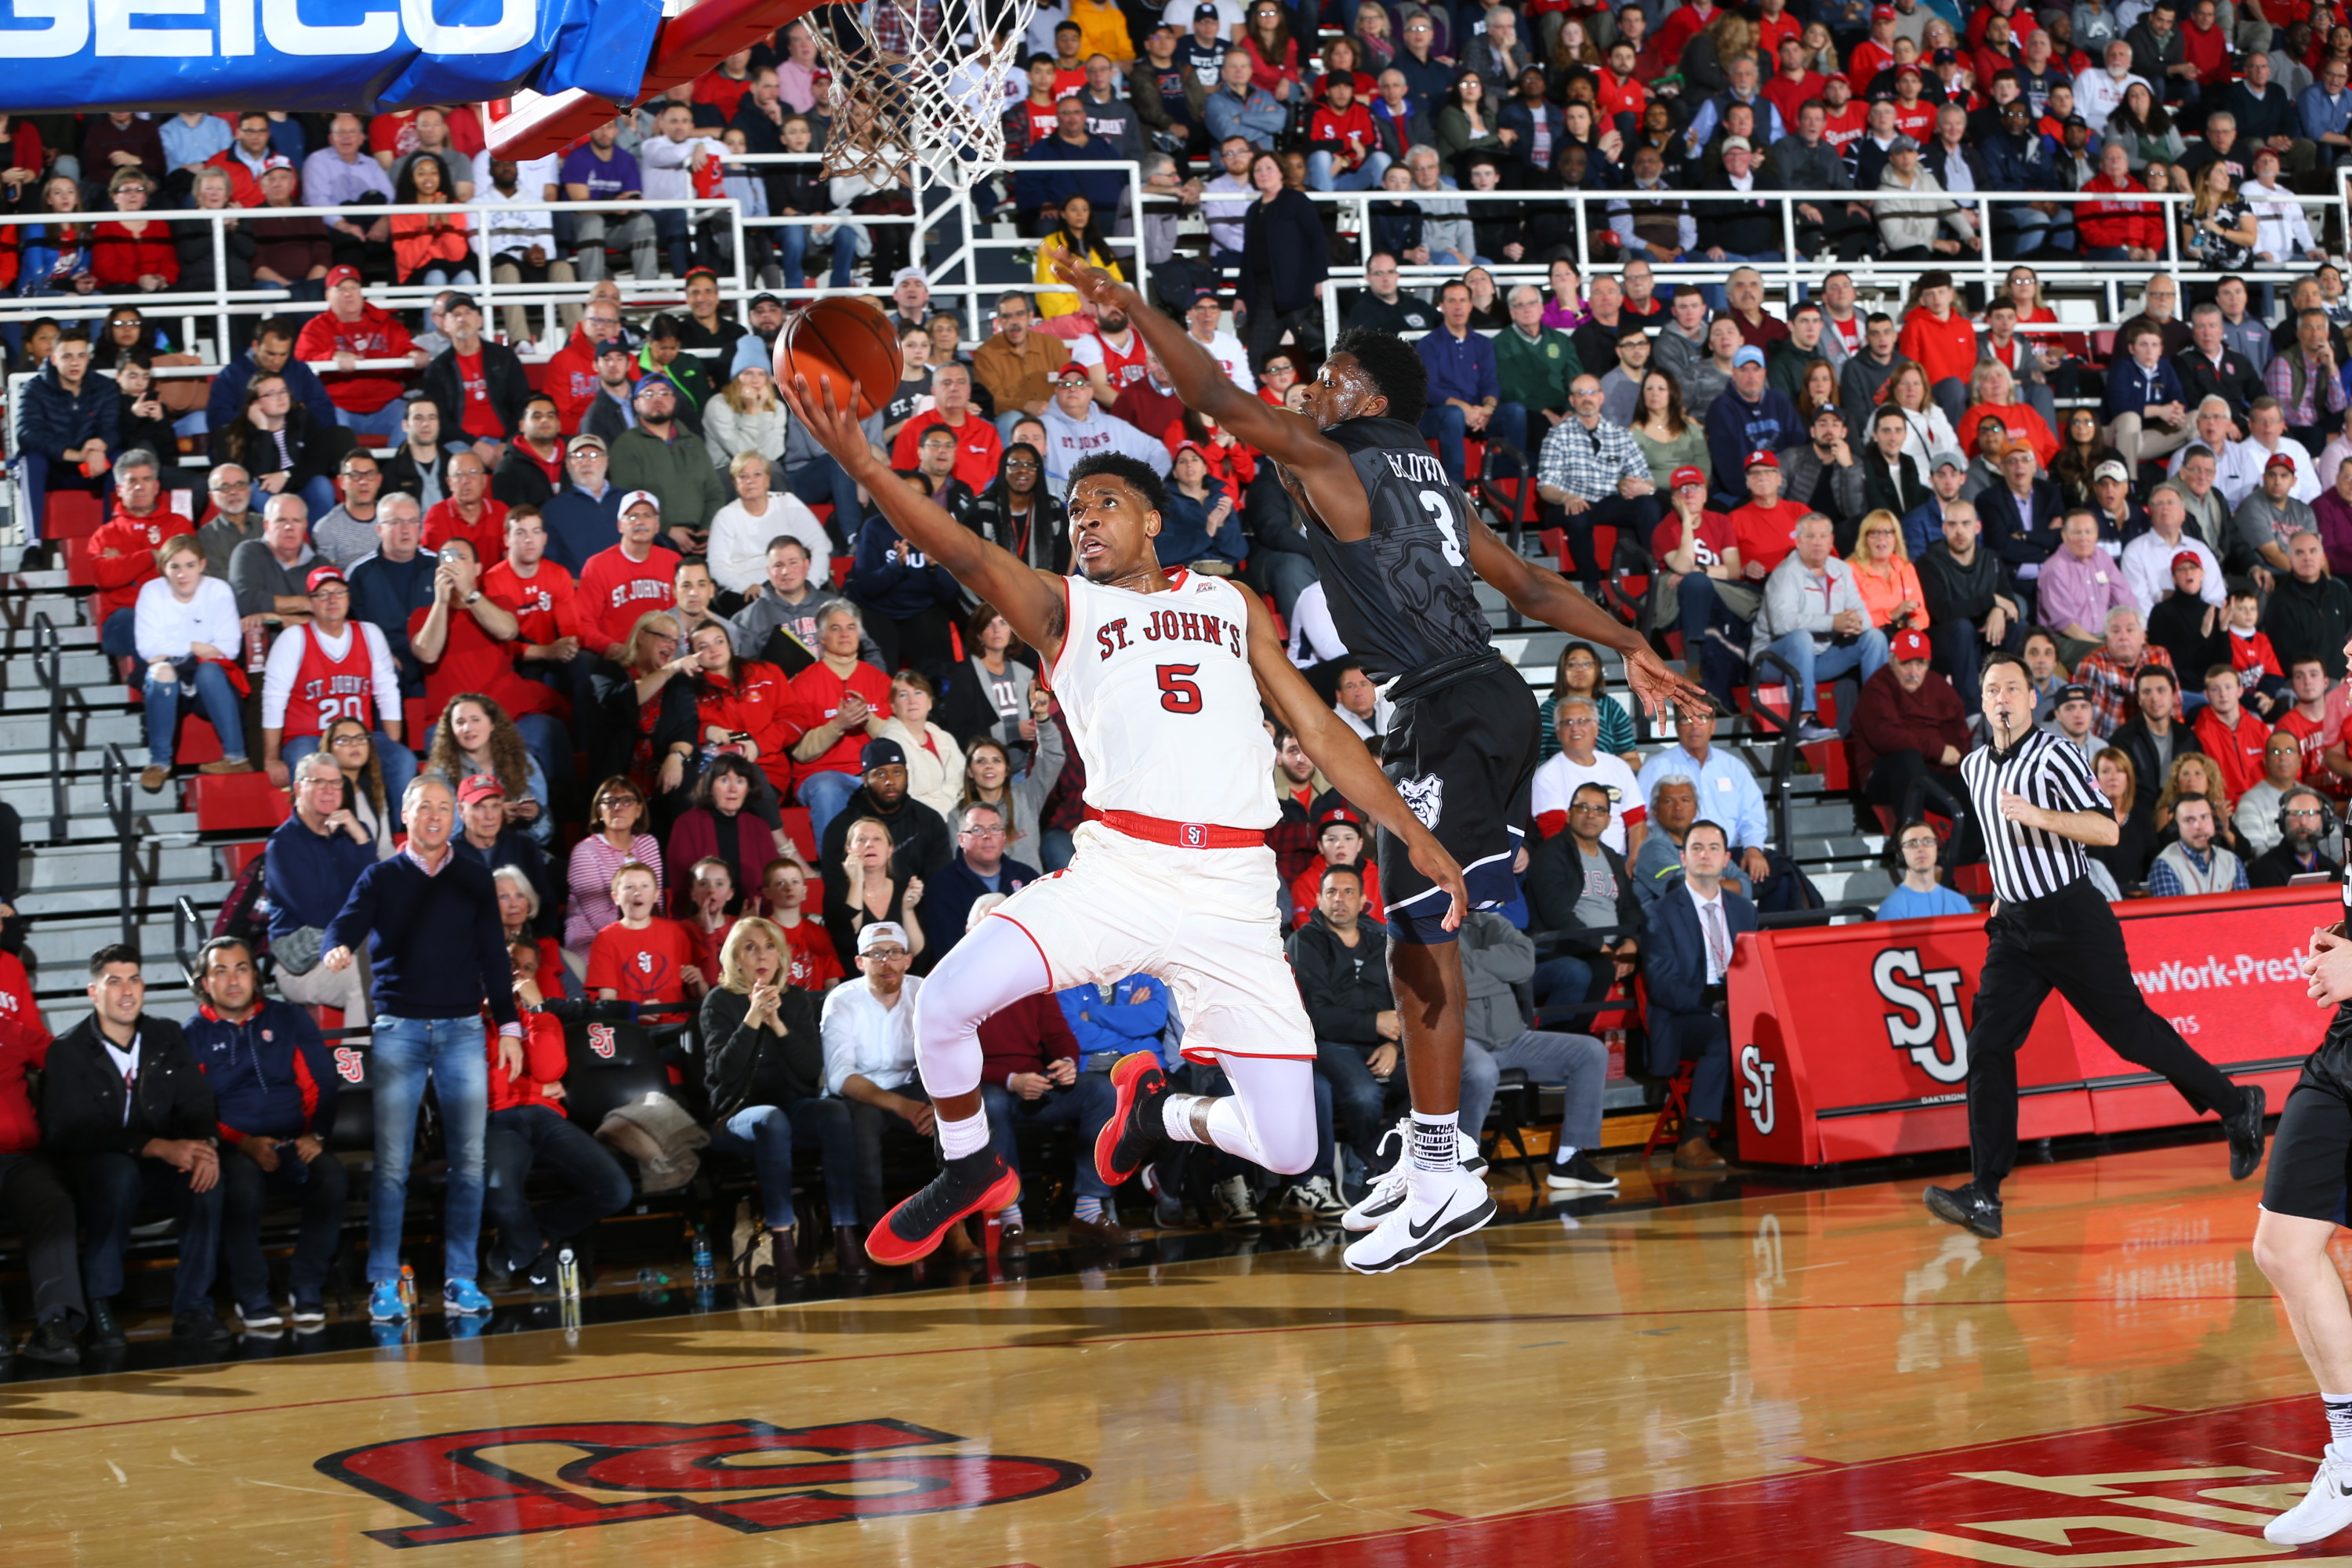 Justin Simon scored 24 points and grabbed 10 boards to lead the Red Storm past Butler